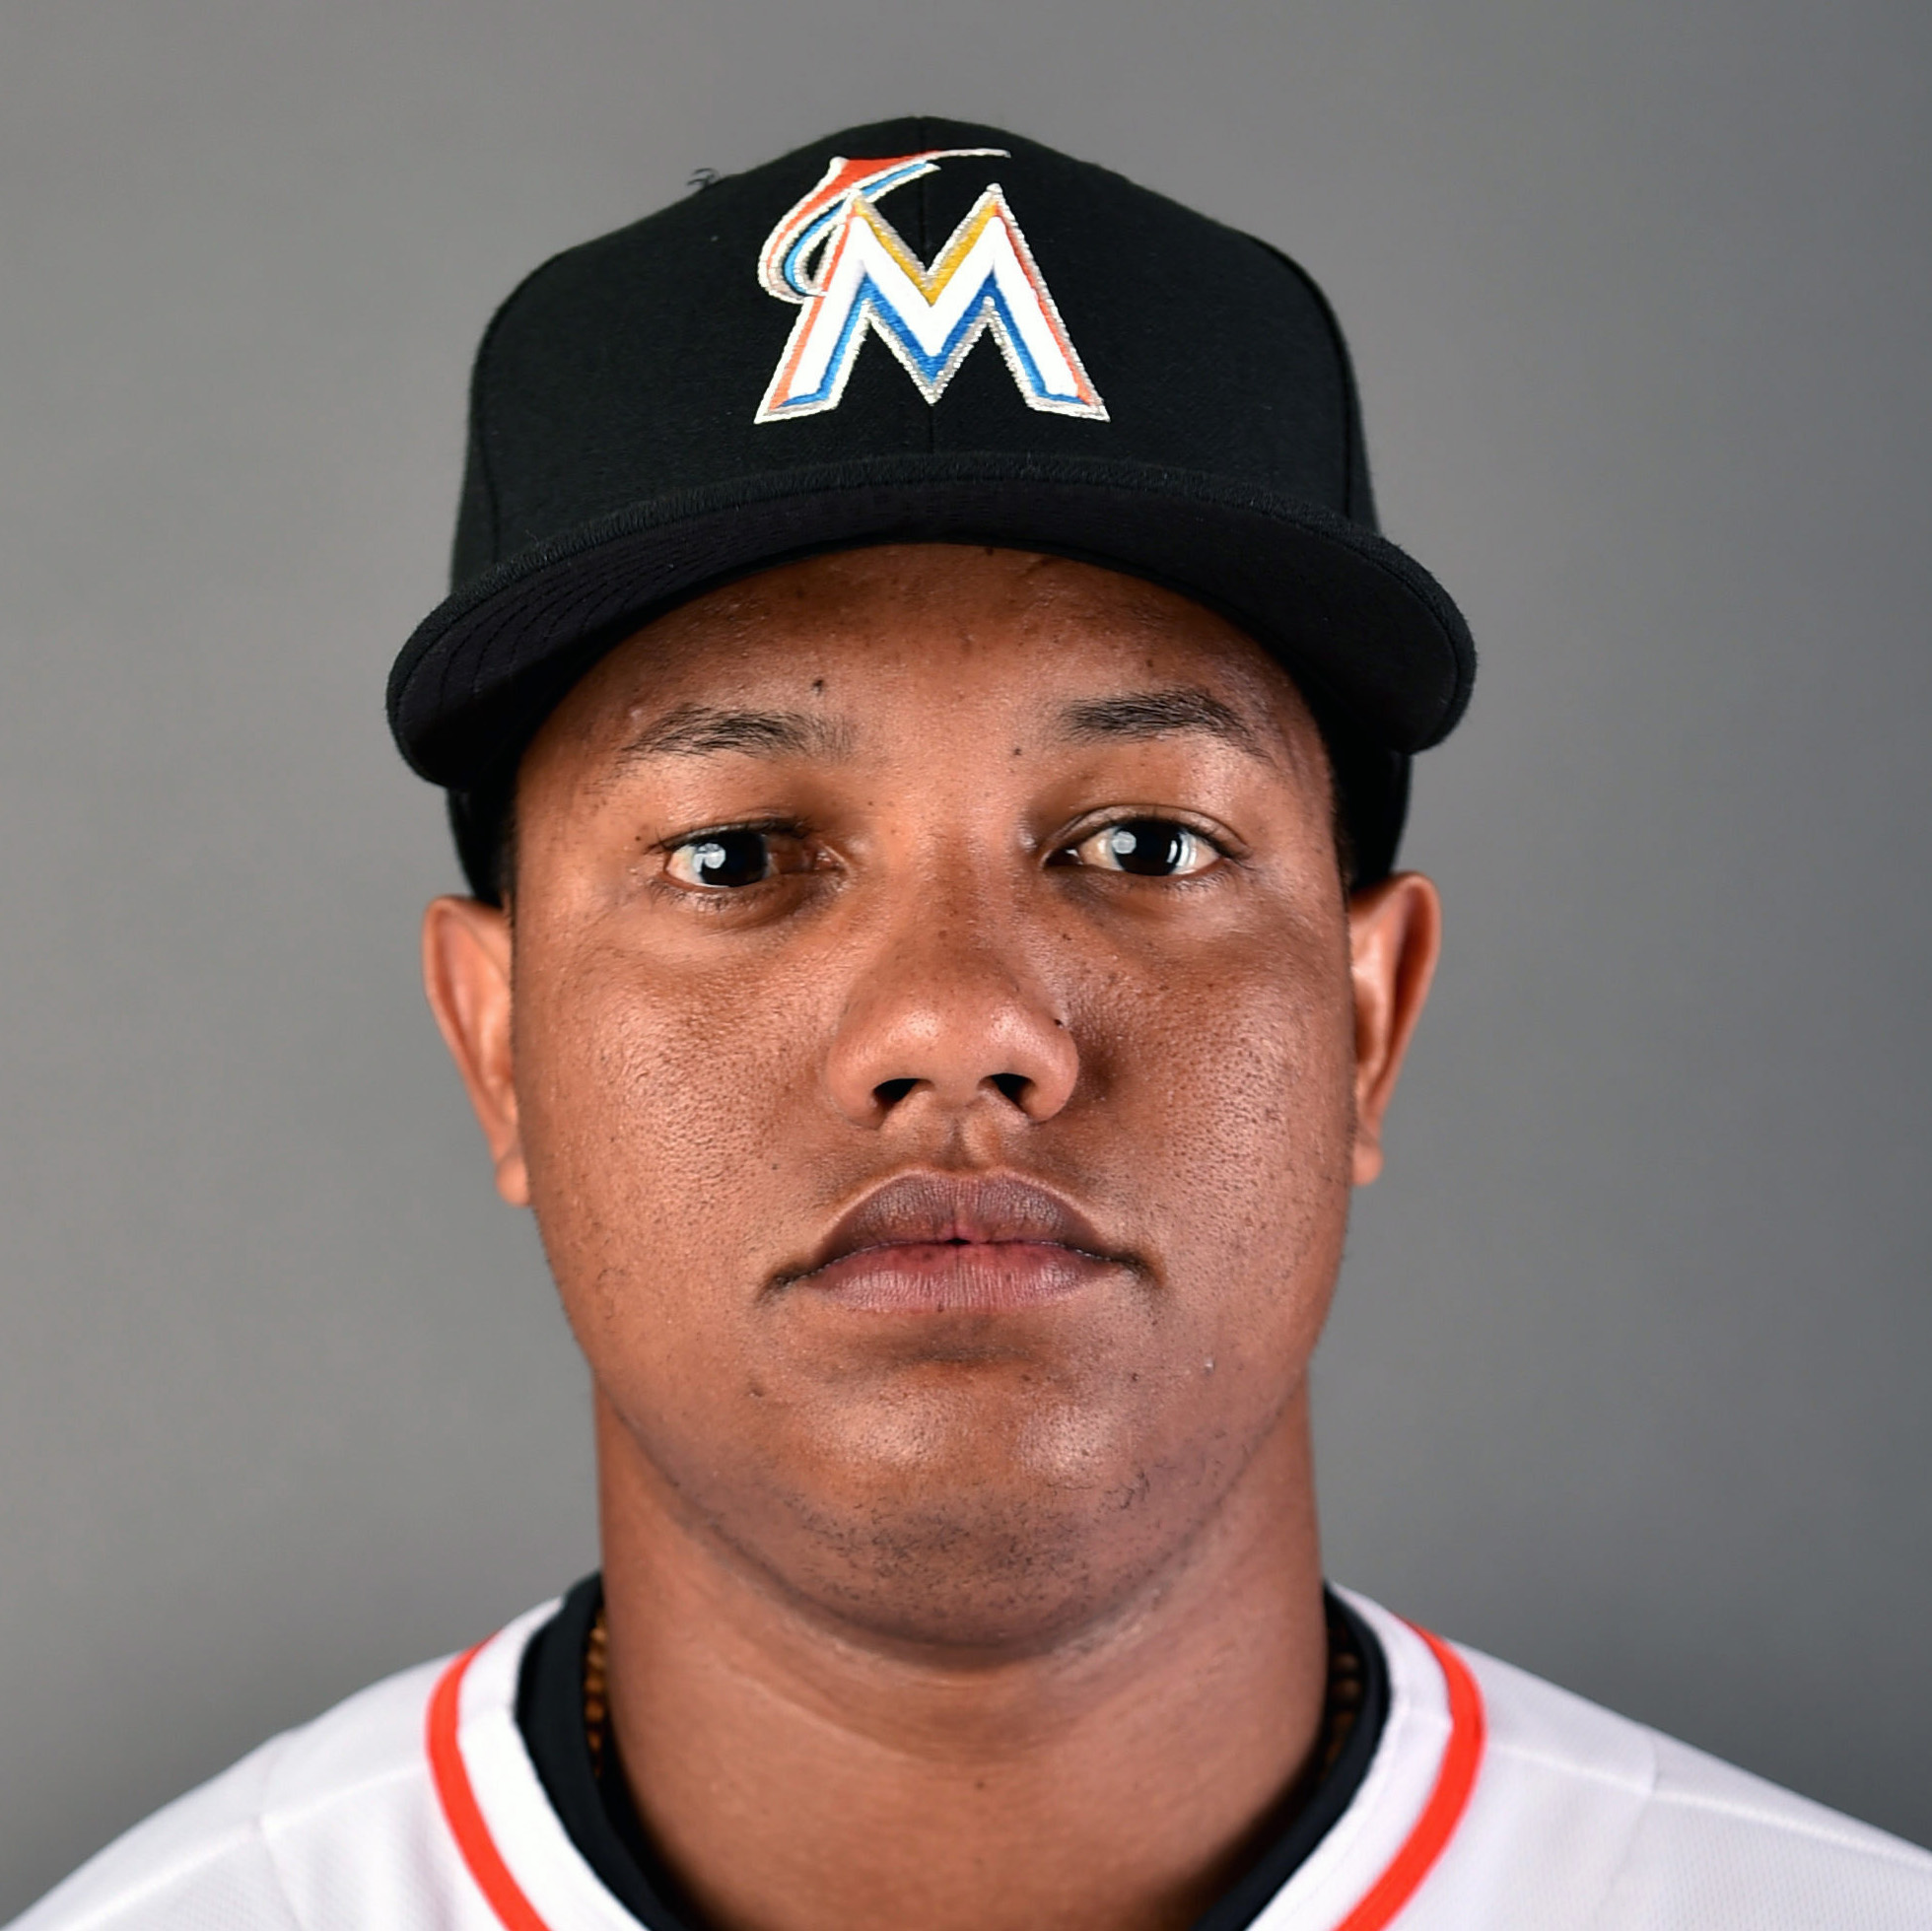 Starlin Castro (R) Headshot